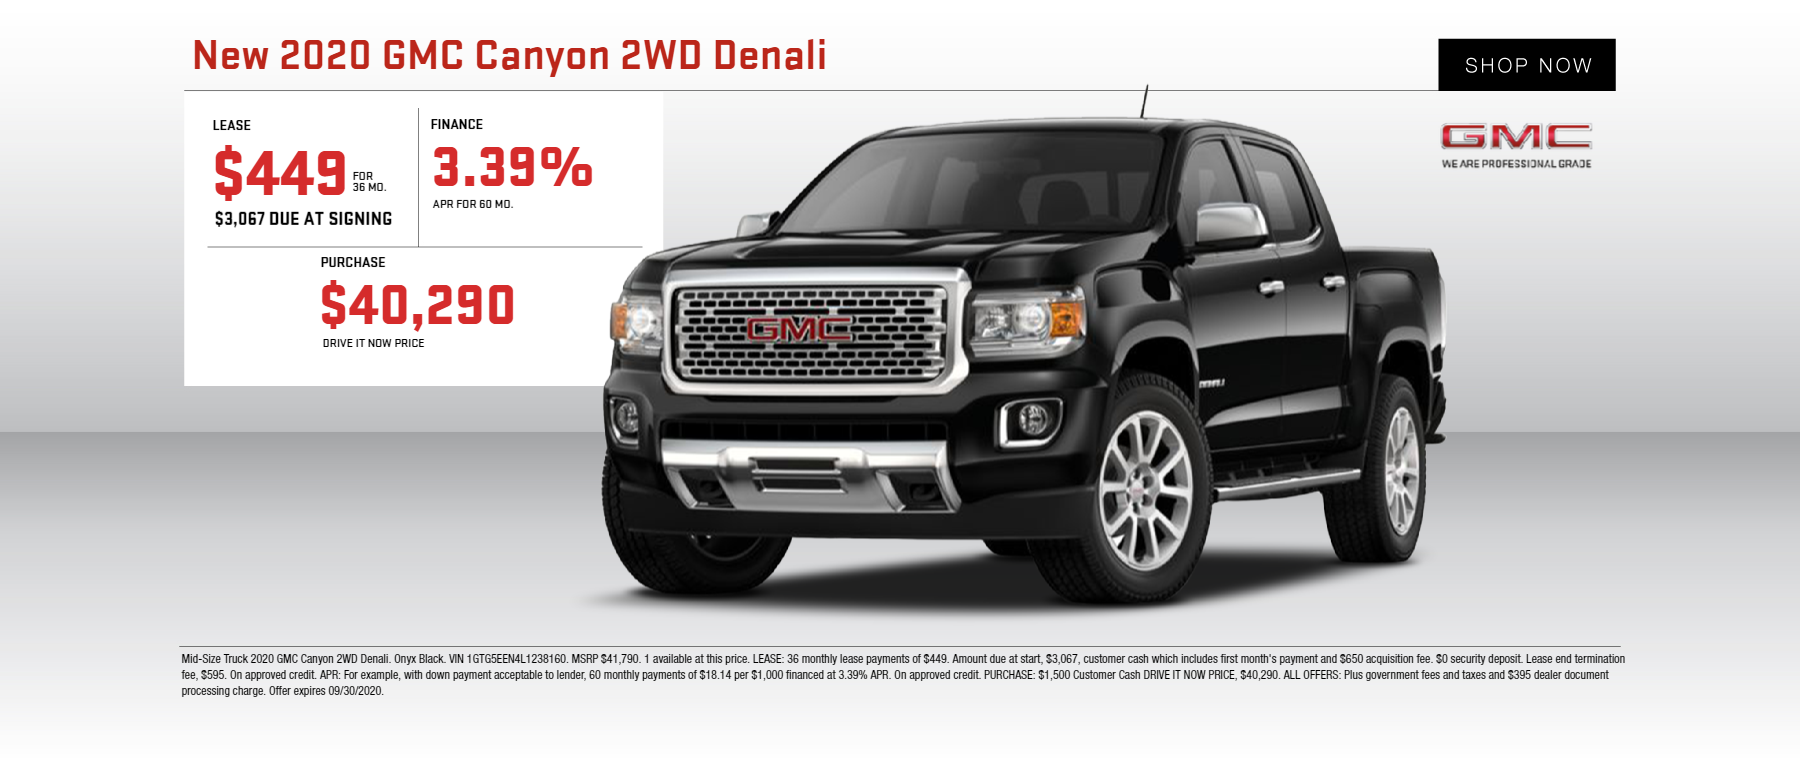 WF38503_website_1800 x 760_2020_GMC_Canyon_2WD Denali_3